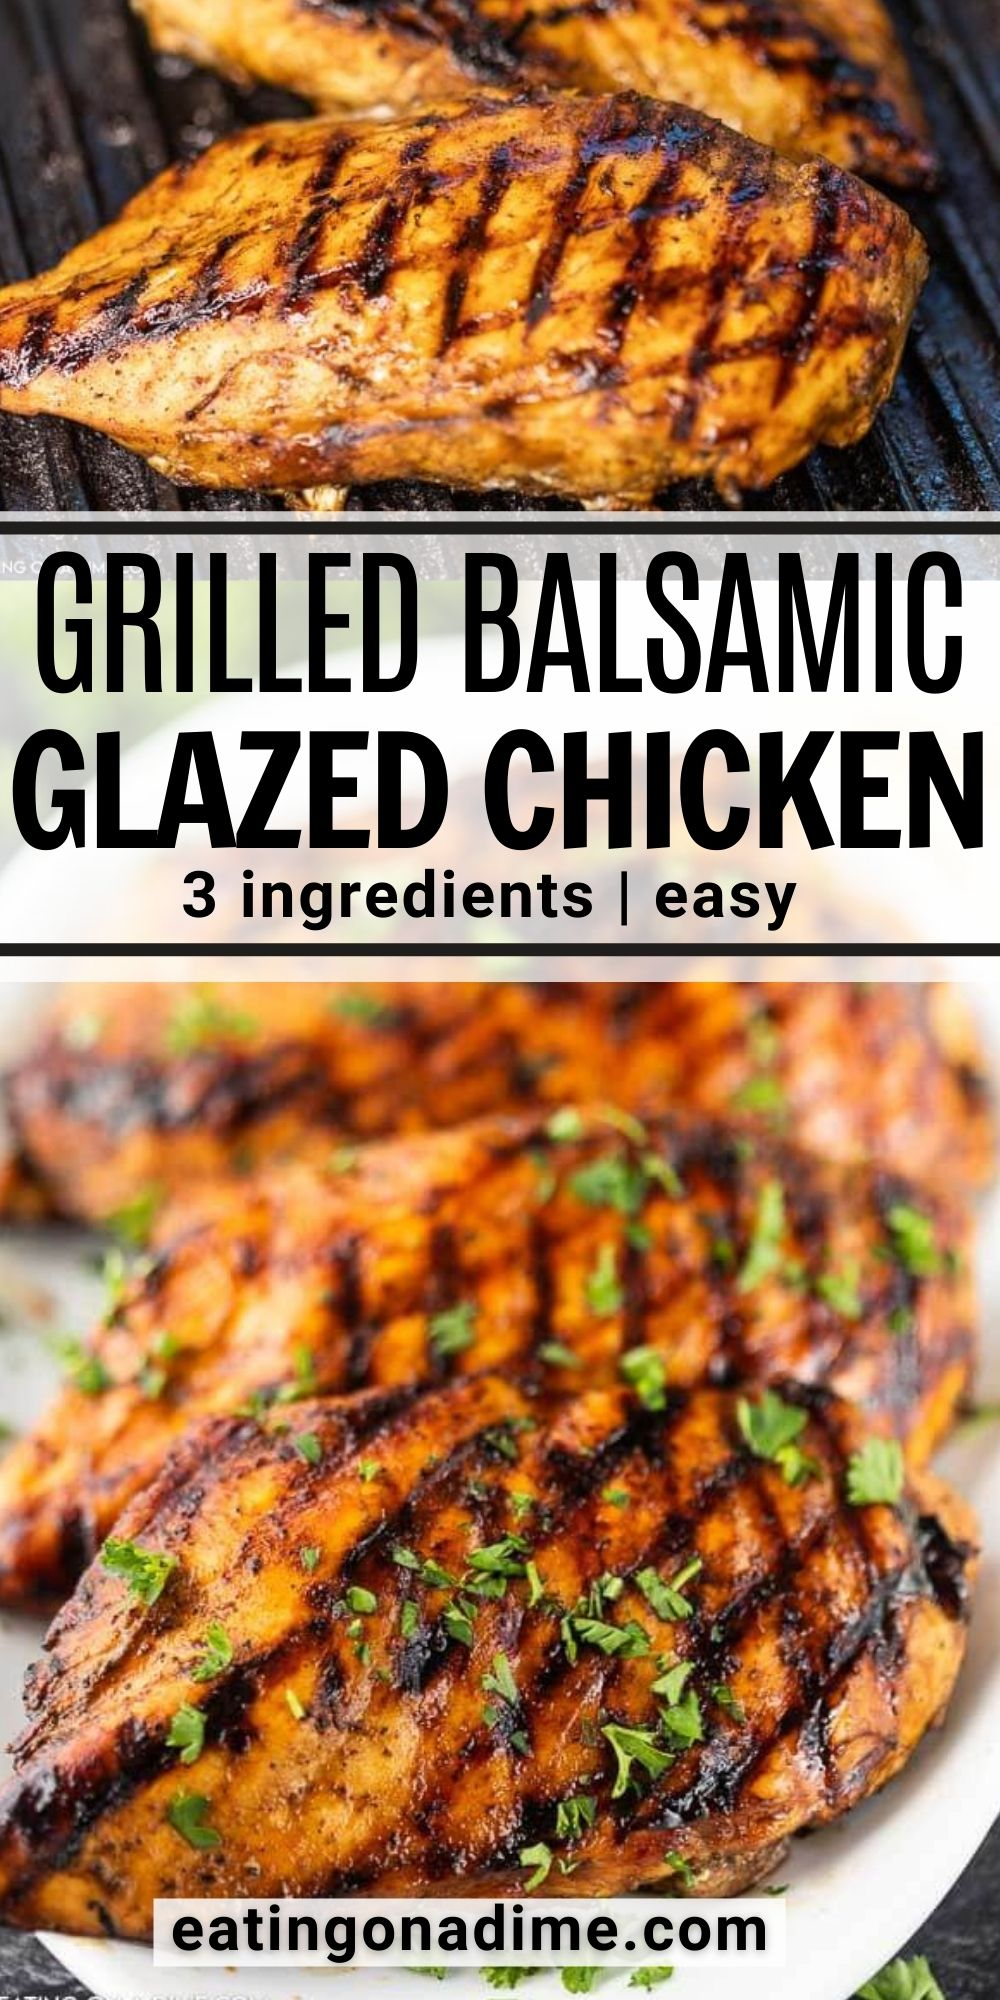 This grilled balsamic glazed chicken is easy to make on the grill with an easy 3 ingredient marinade. This is the best ever grilled balsamic chicken. It's one of my favorite grilled chicken recipes. You will love making this recipe this Spring and Summer! #eatingonadime #grillingrecipes #balsamicrecipes #chickenrecipes